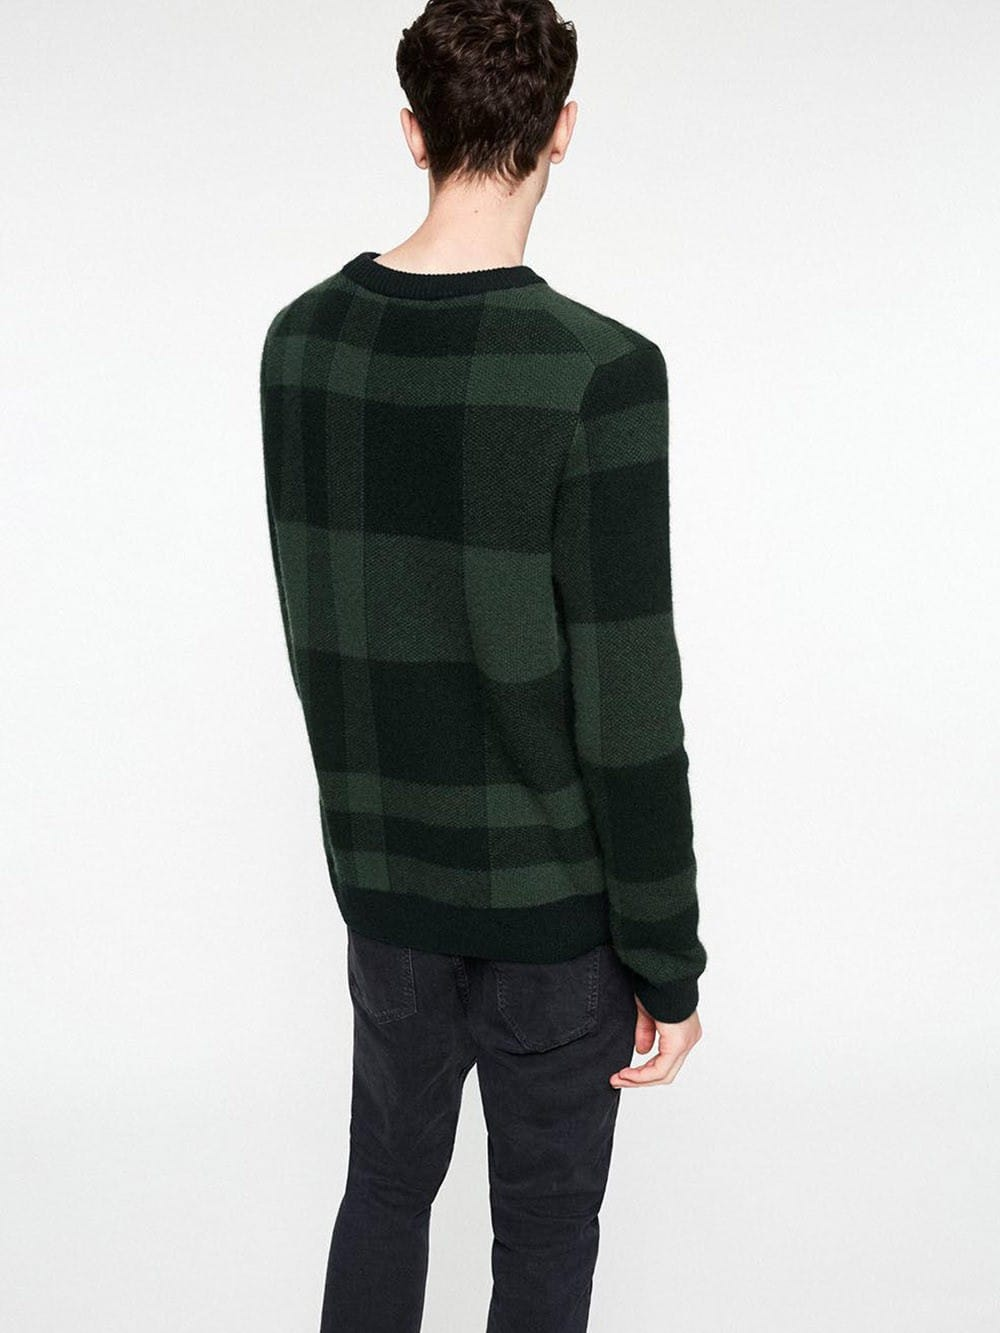 Squared sweater made of organic cotton-Wallace